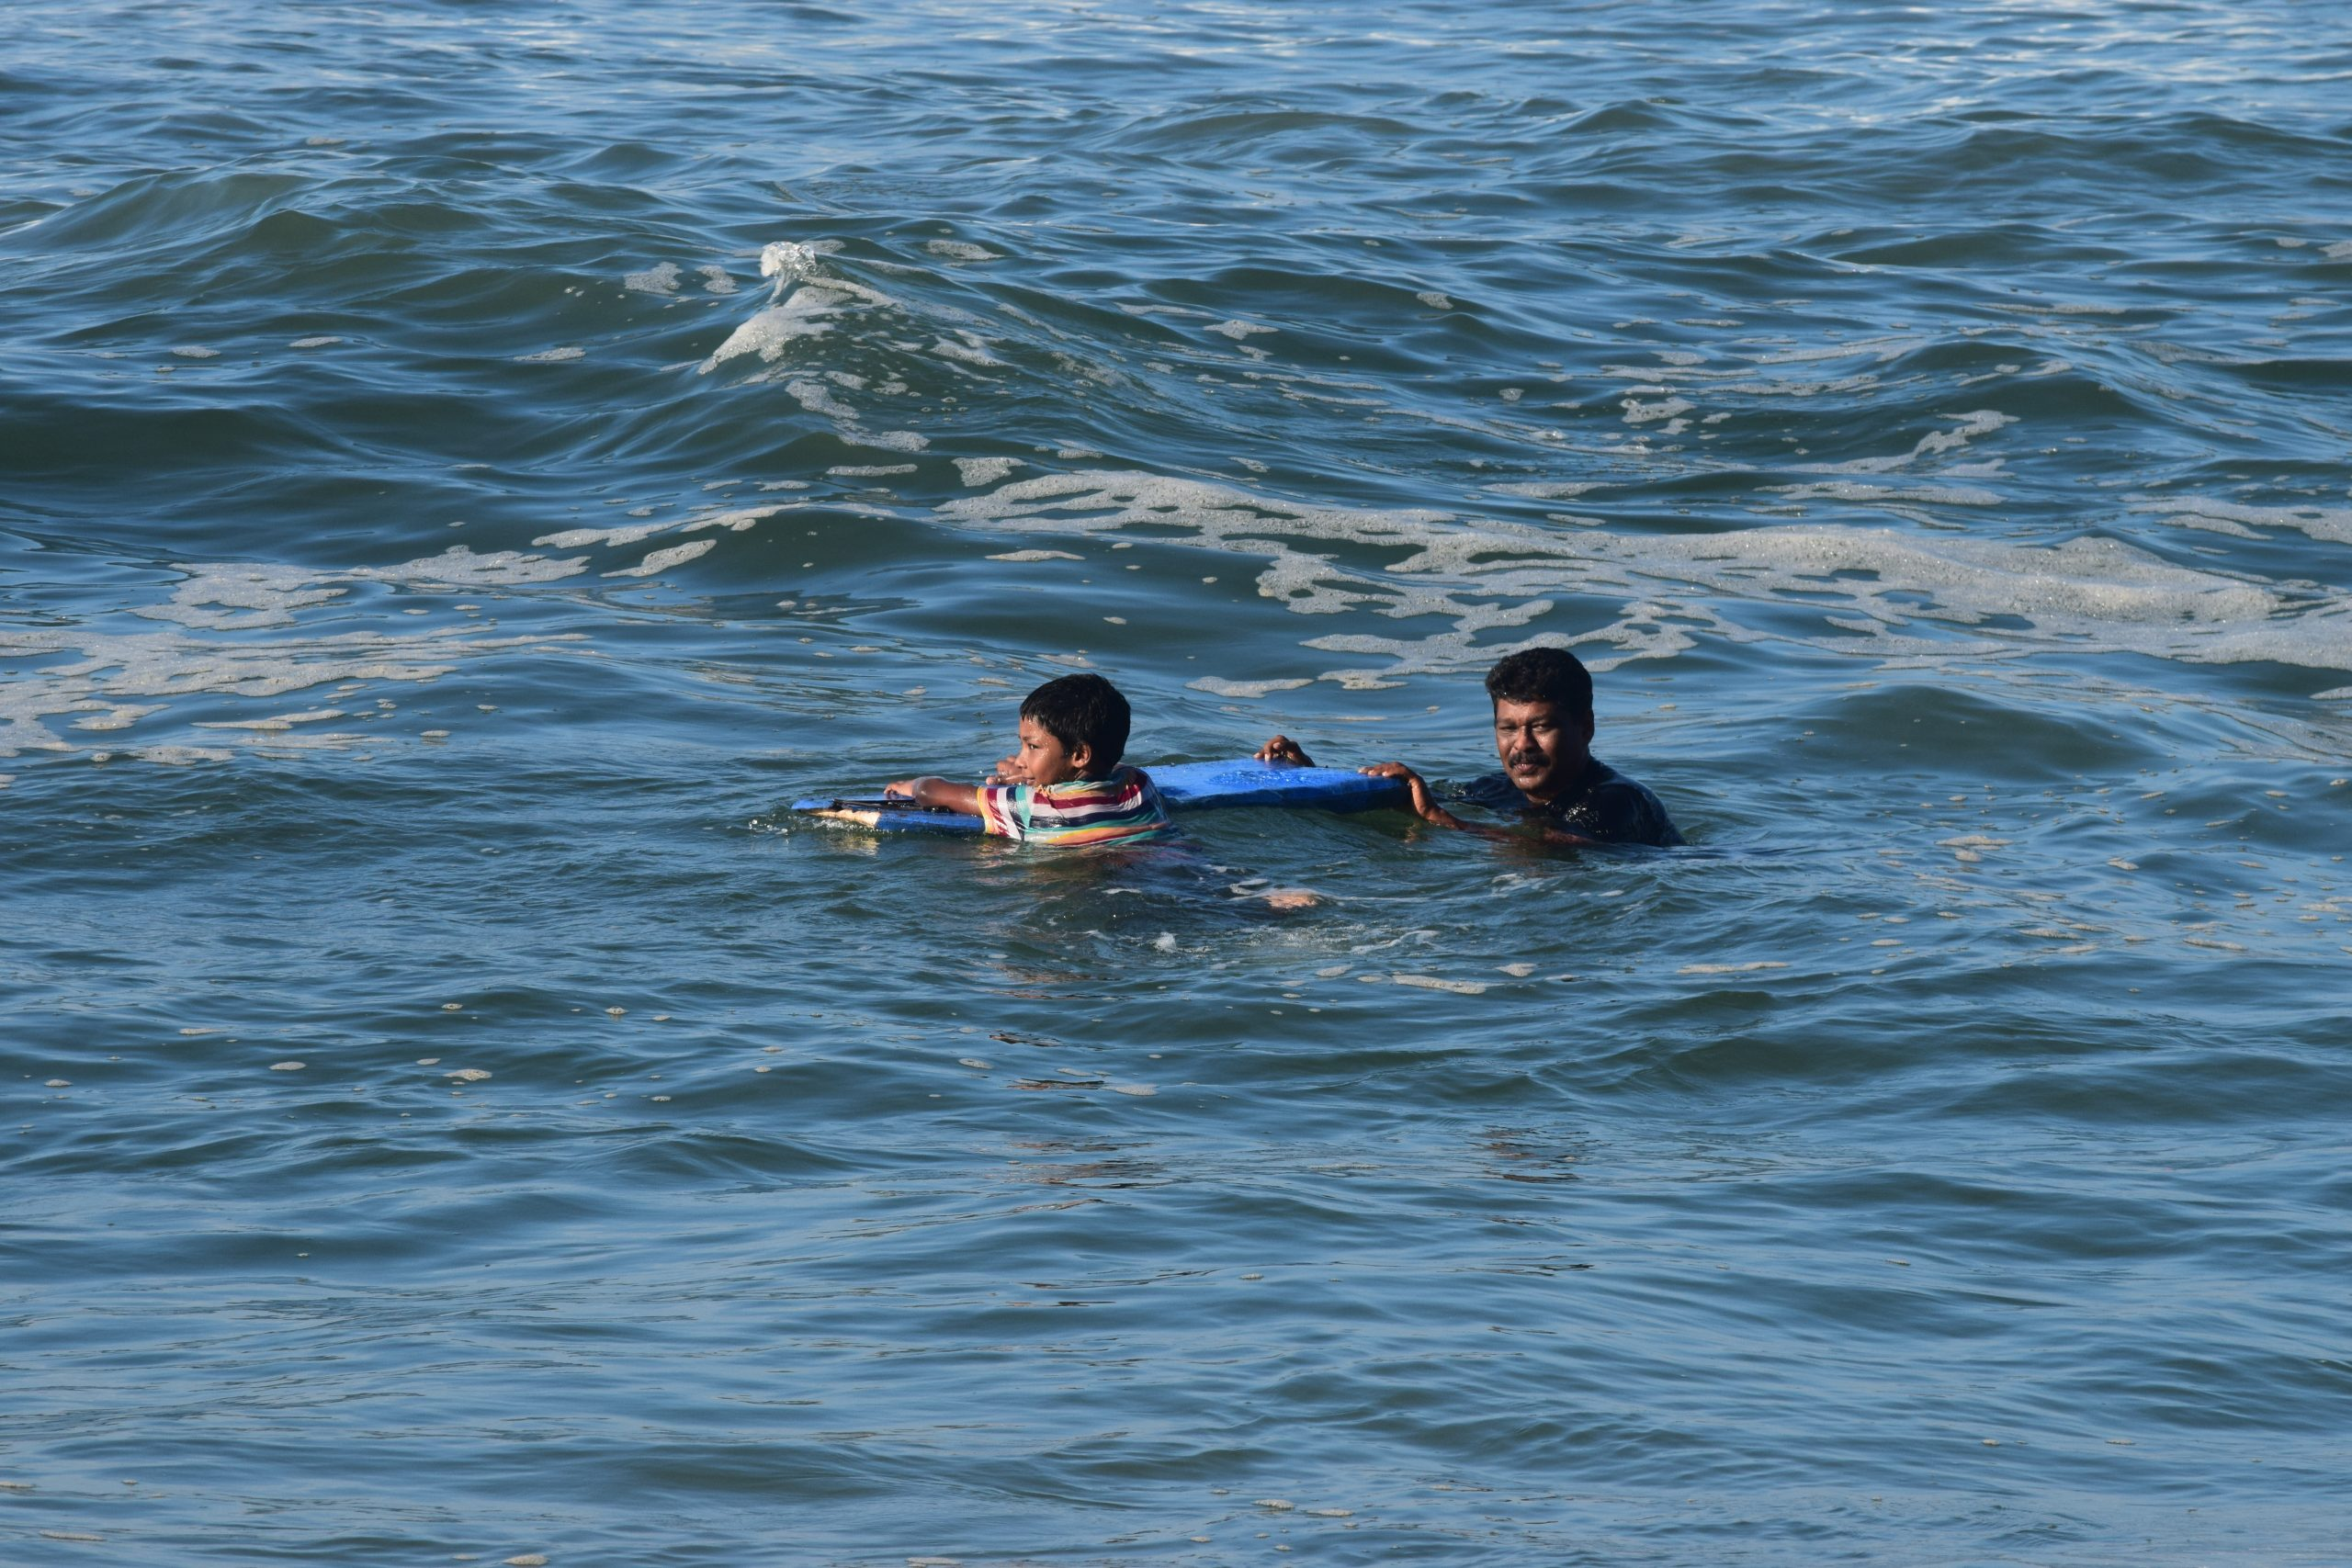 Father and son in a sea